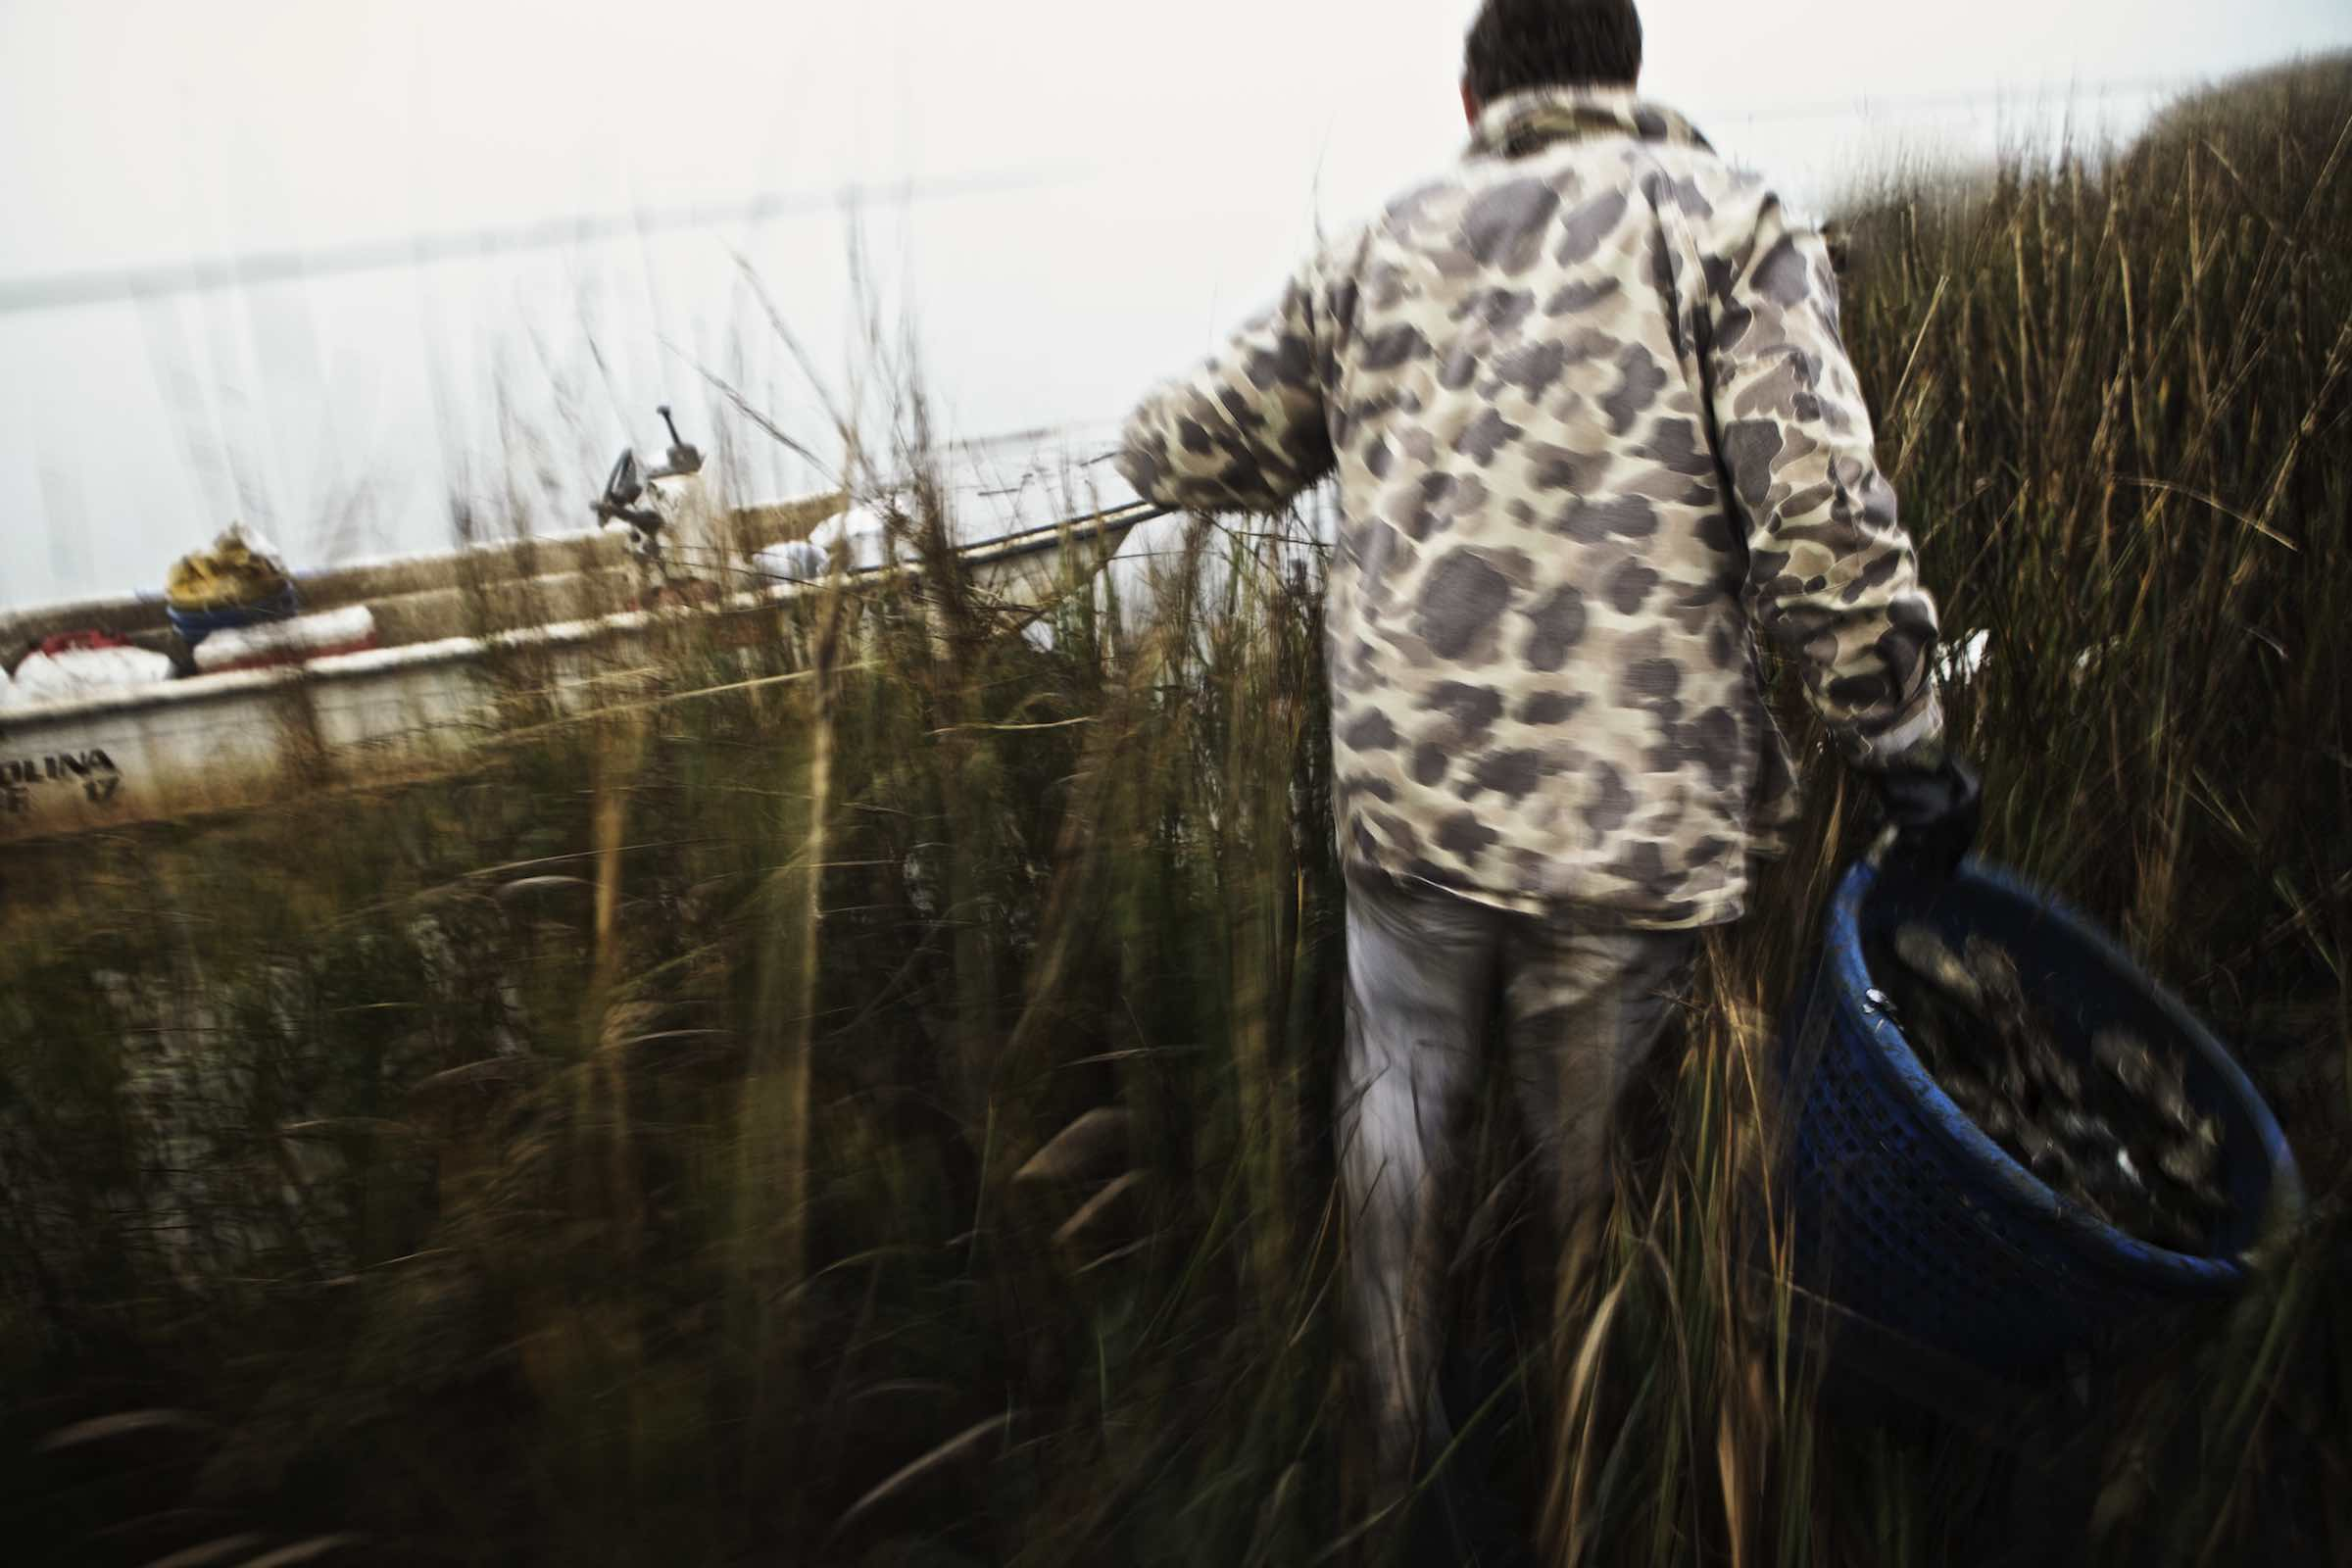 Jody Horton Photography - Fisherman carrying oyster haul through tall marsh grasses.